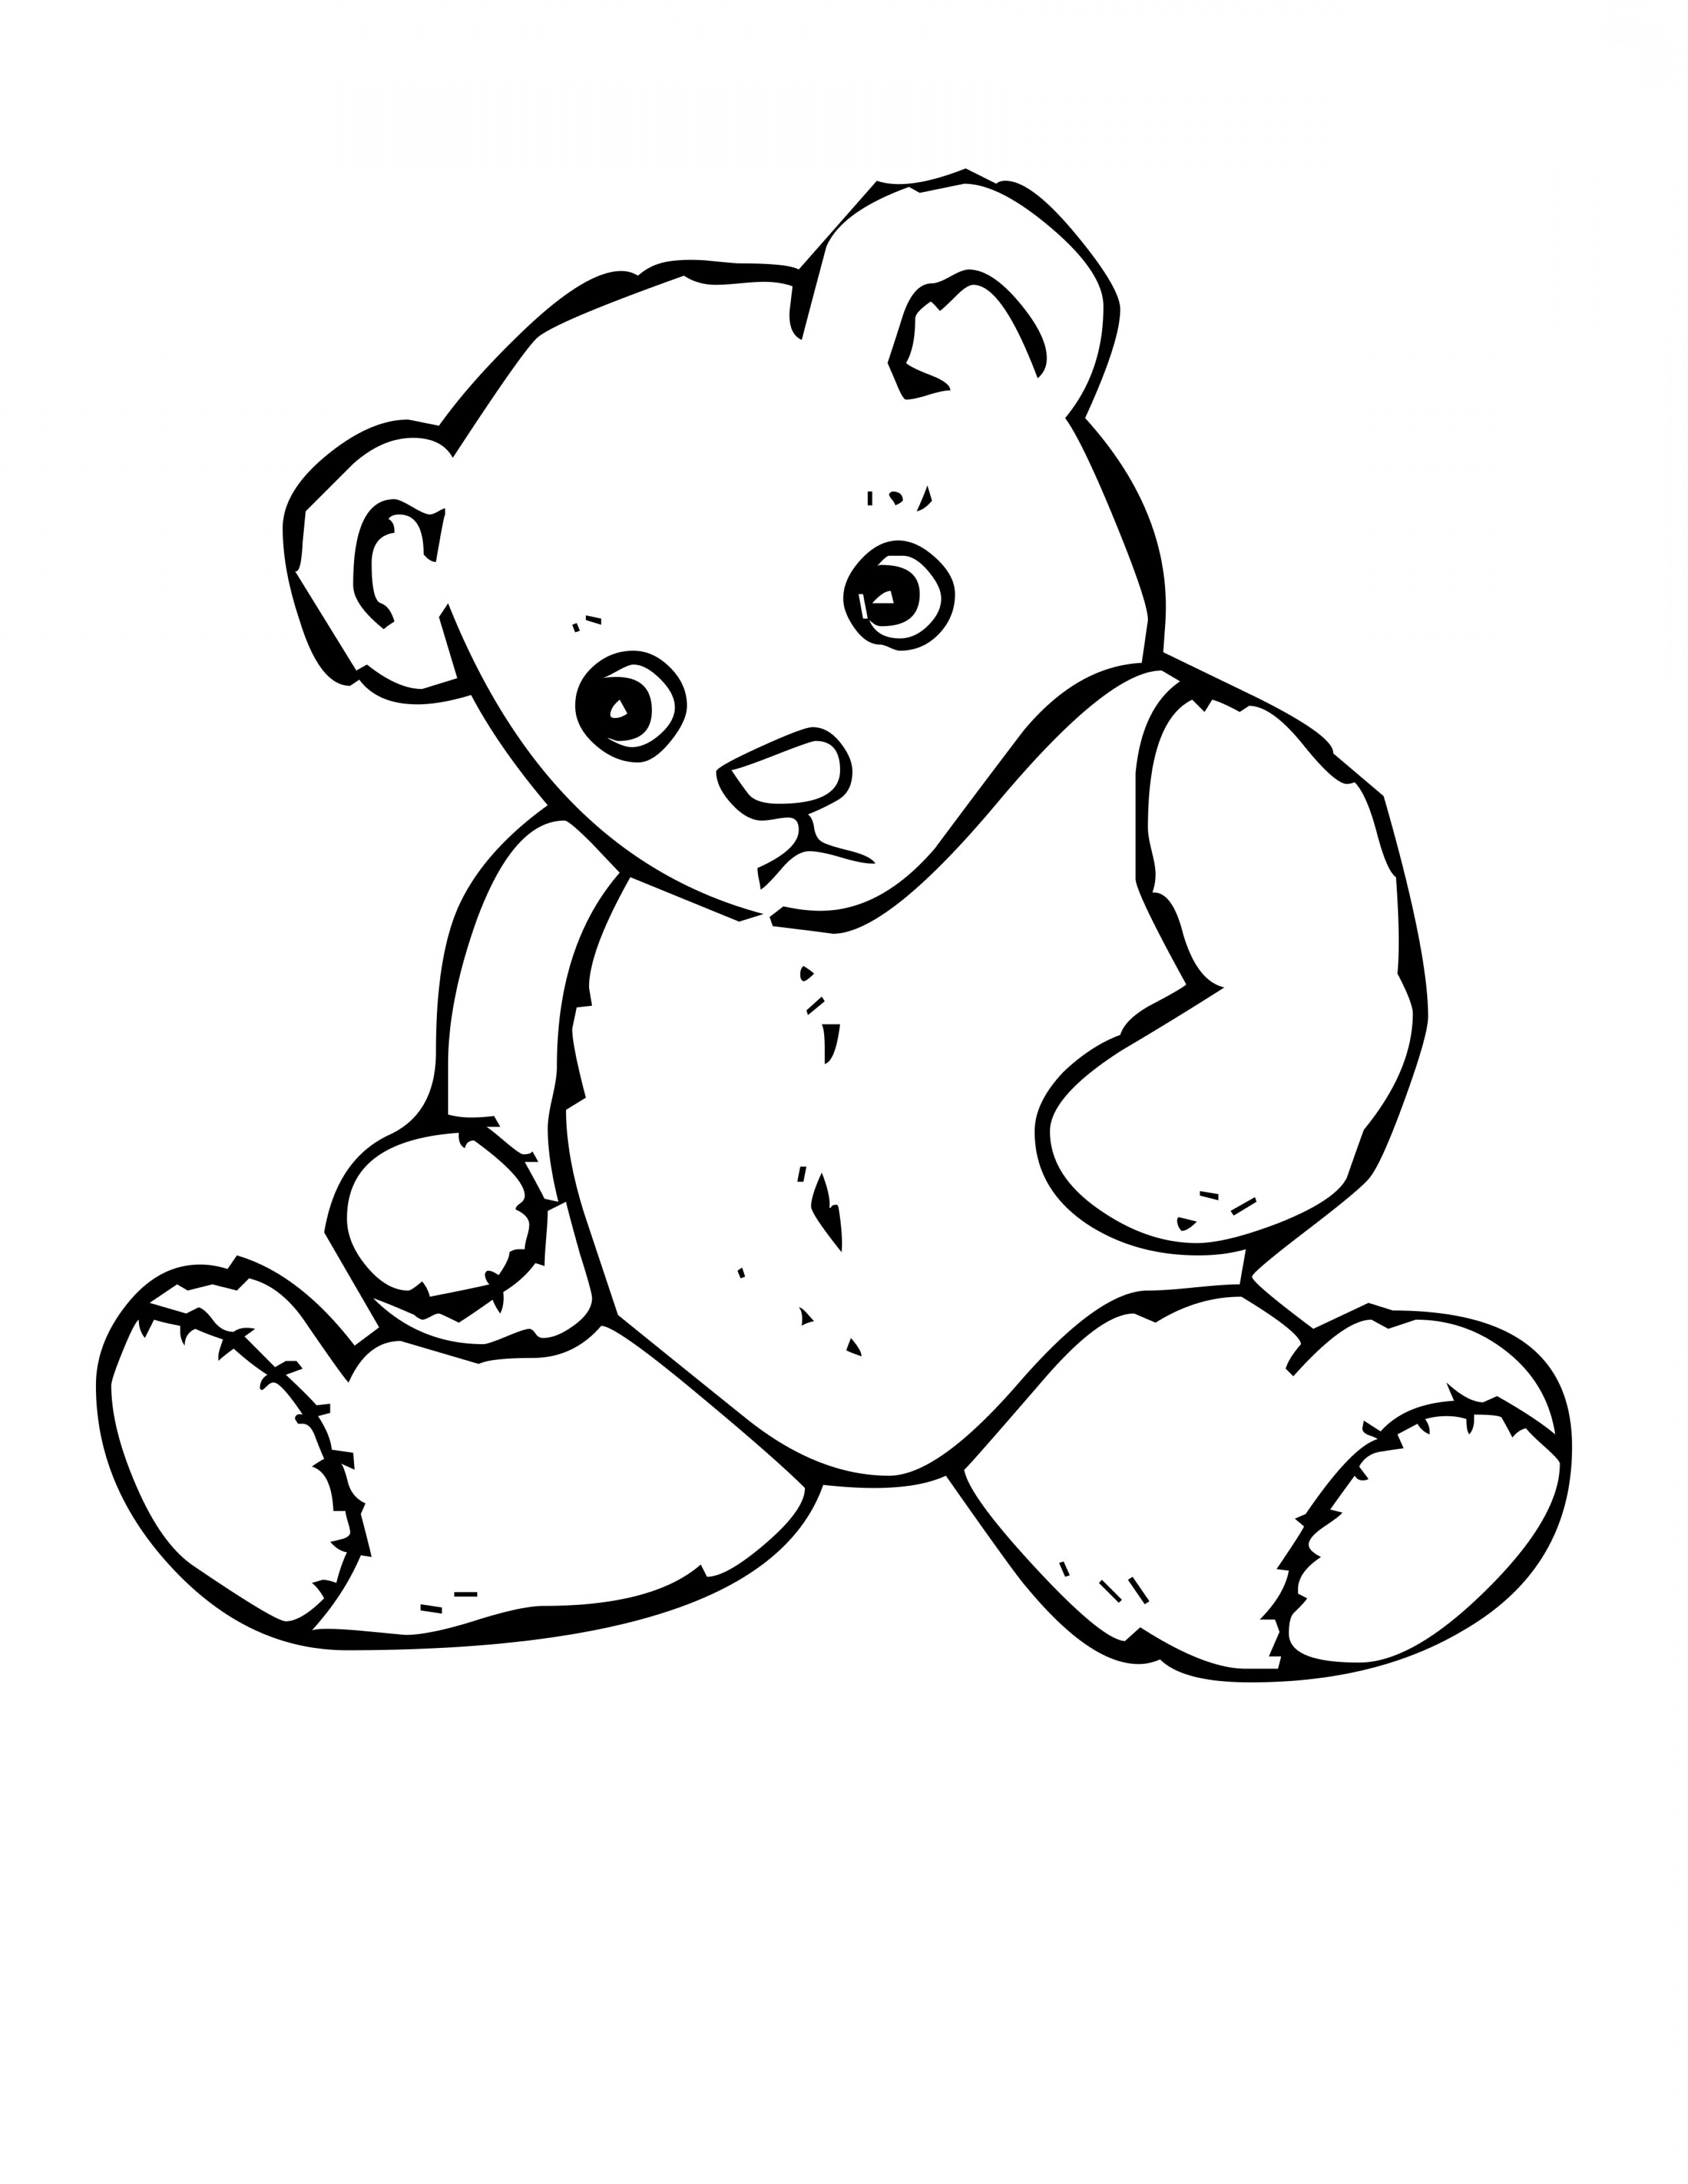 3060x3960 Line Drawings Of Toys Ardiafm